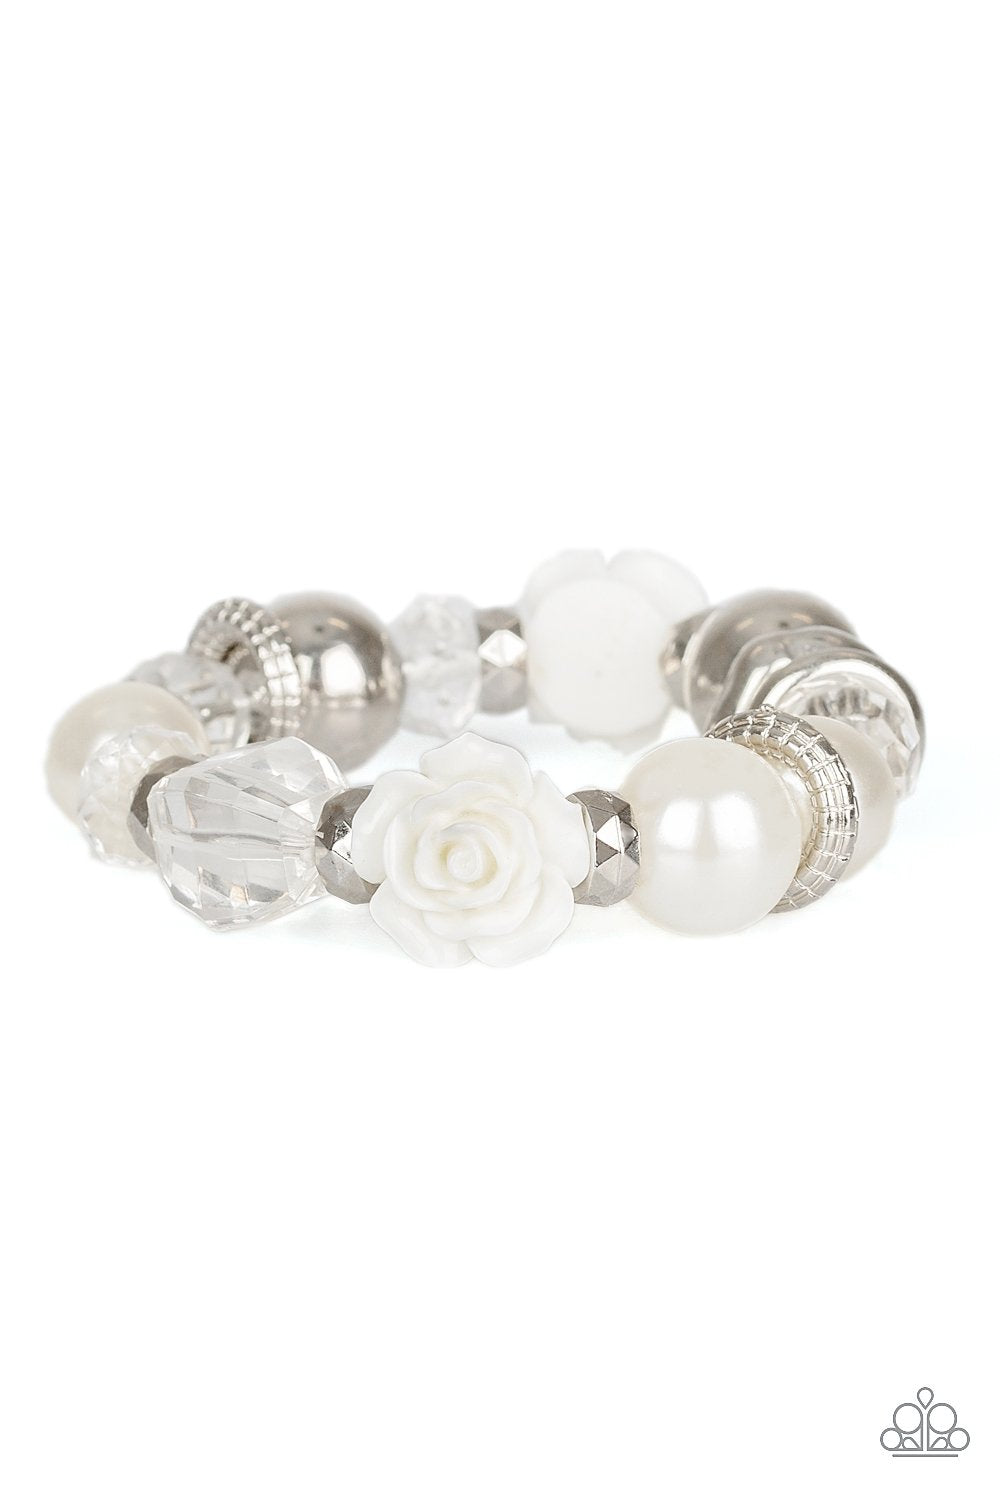 Here I Am - White - Paparazzi Accessories - Pretty Girl Jewels